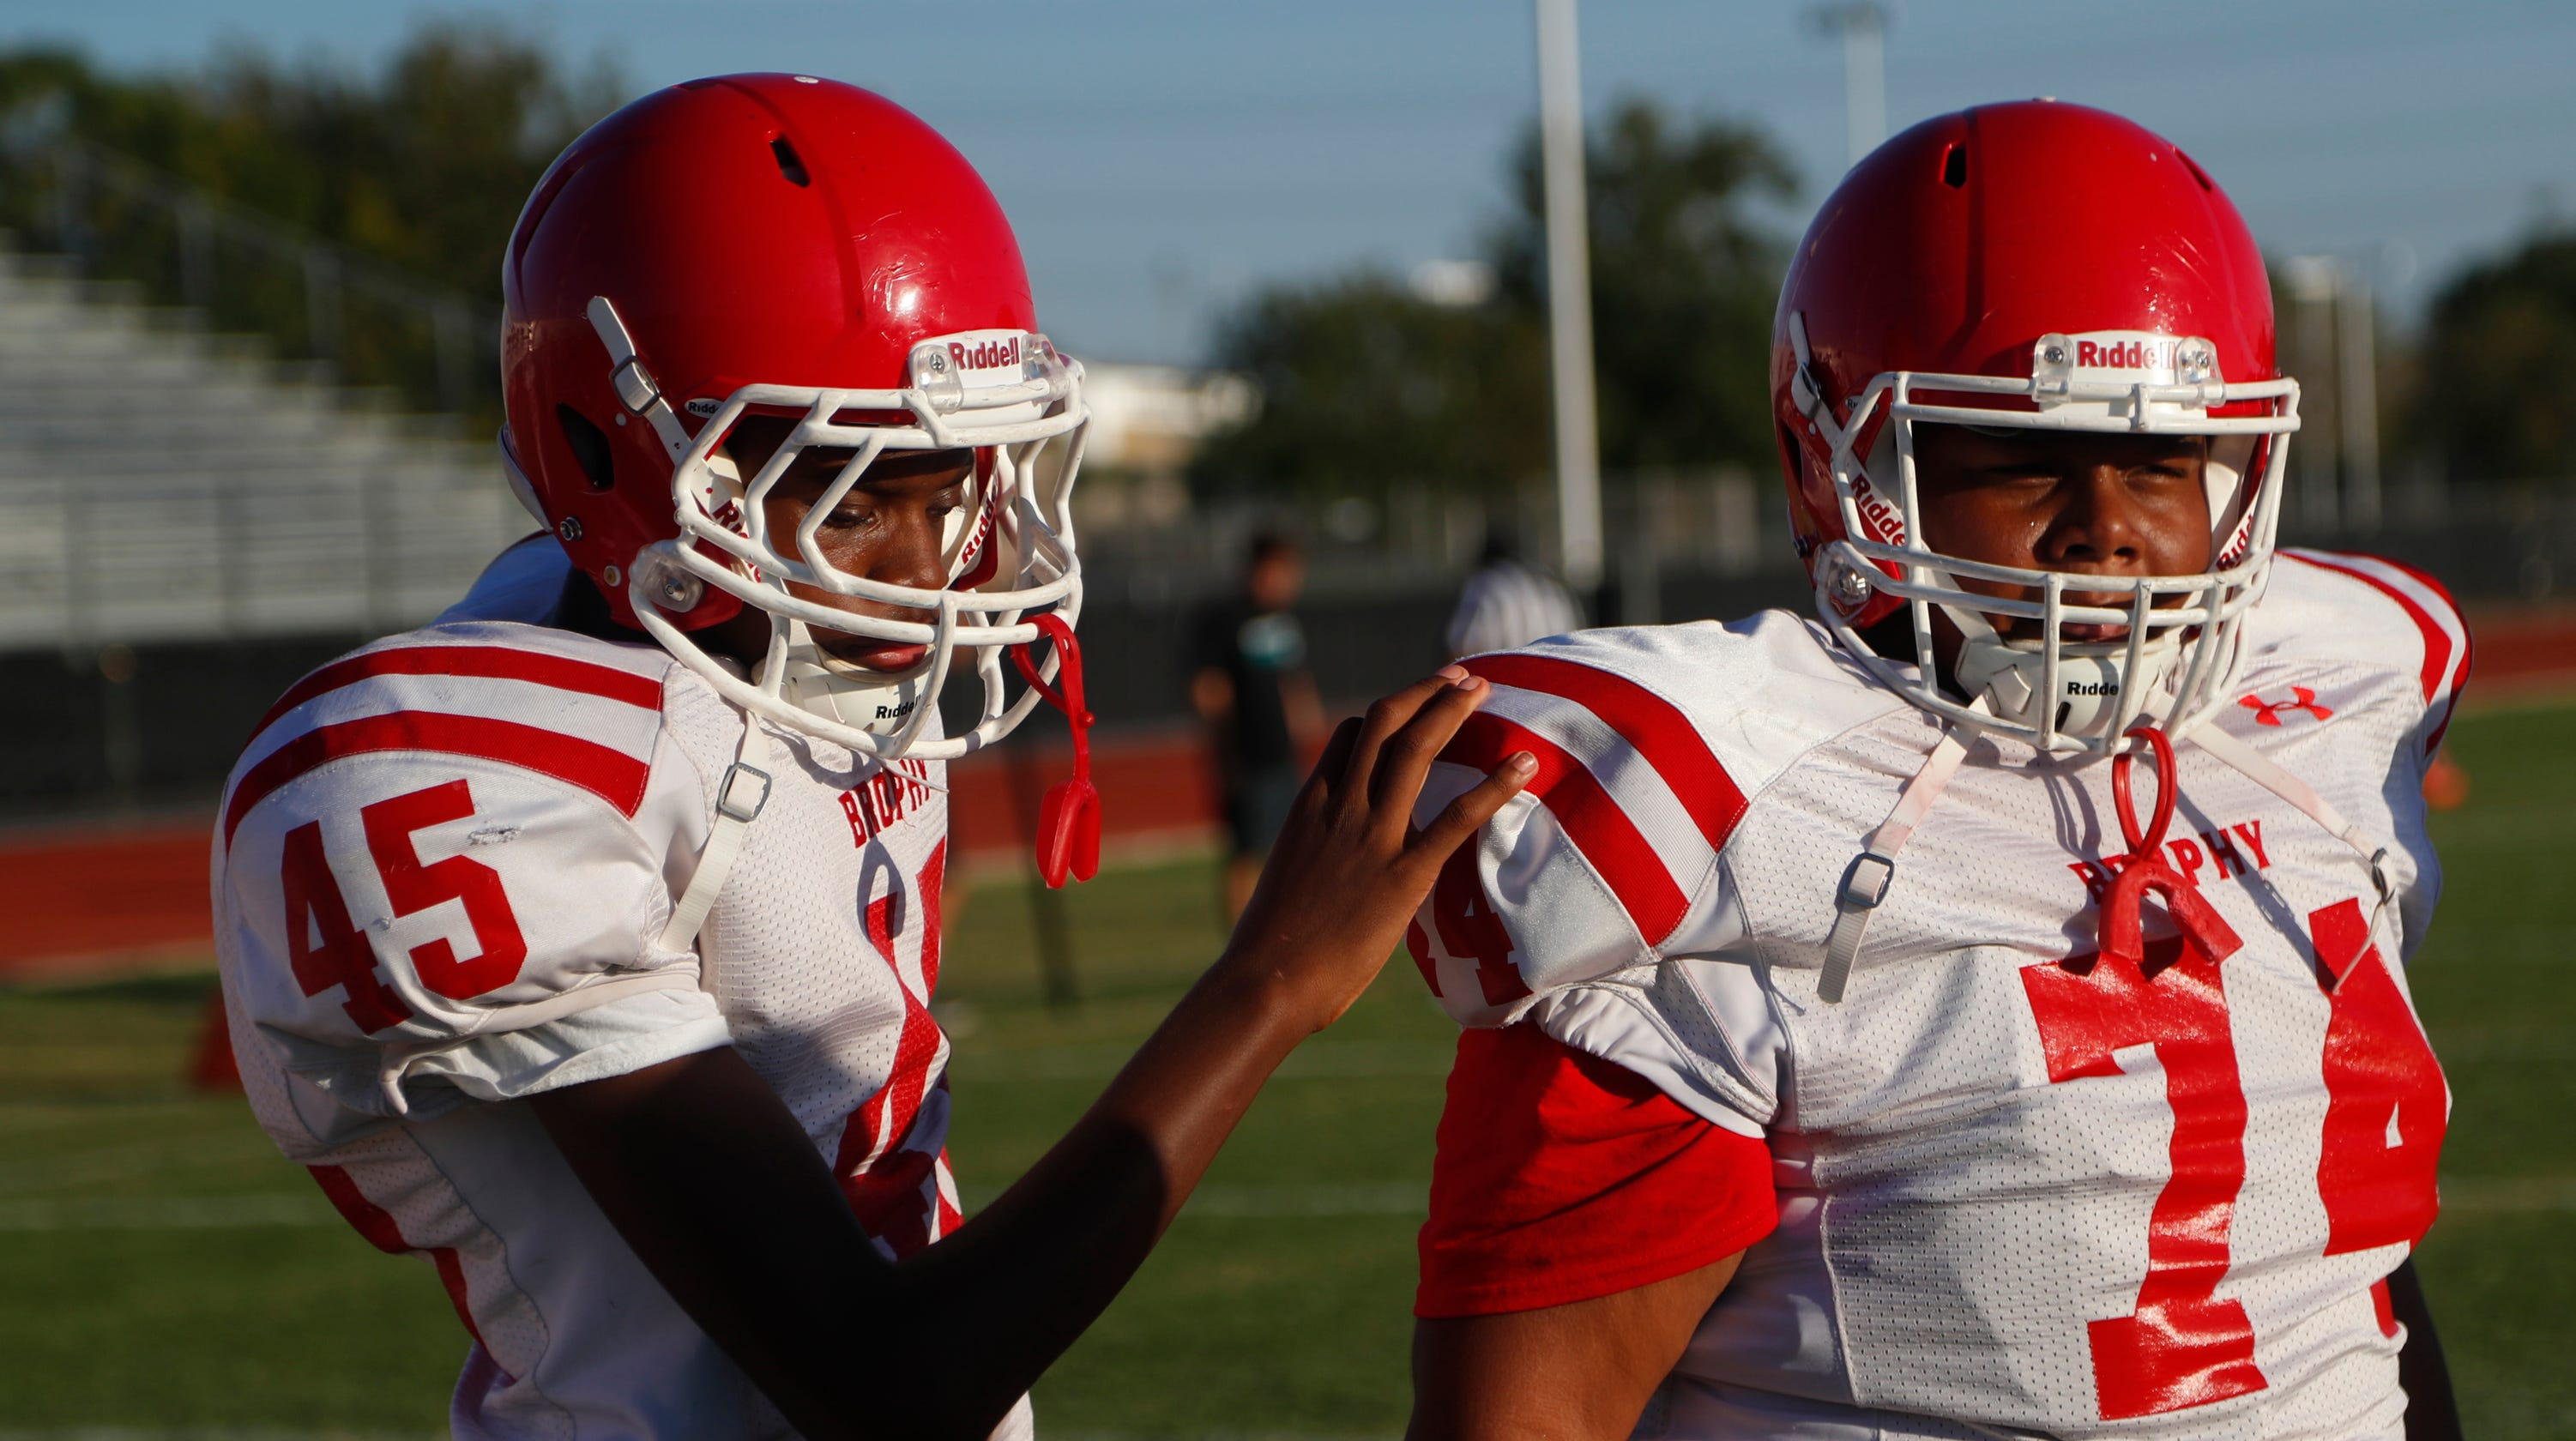 A blind high school running back in Phoenix scored a touchdown this month after the other team's defense LET him run it in. But he wanted to score for real, or not score at all. So over the weekend, another team played him straight up, and he scored TWO legit touchdowns . . .